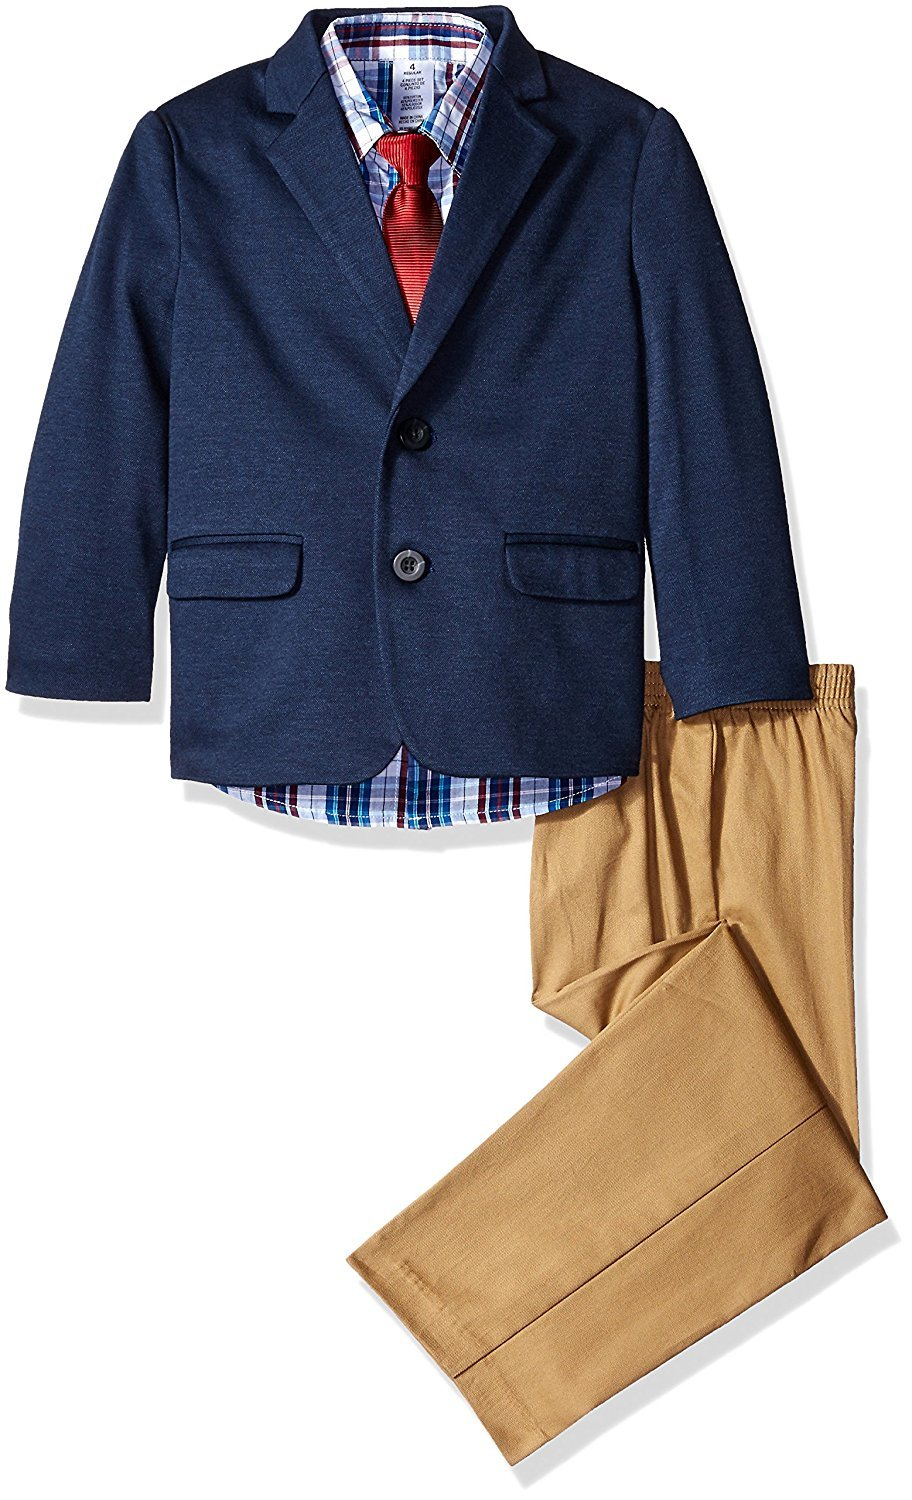 IZOD Kids Toddler Boys' Four Piece Formal Suit Set, Navy/Red, 3T